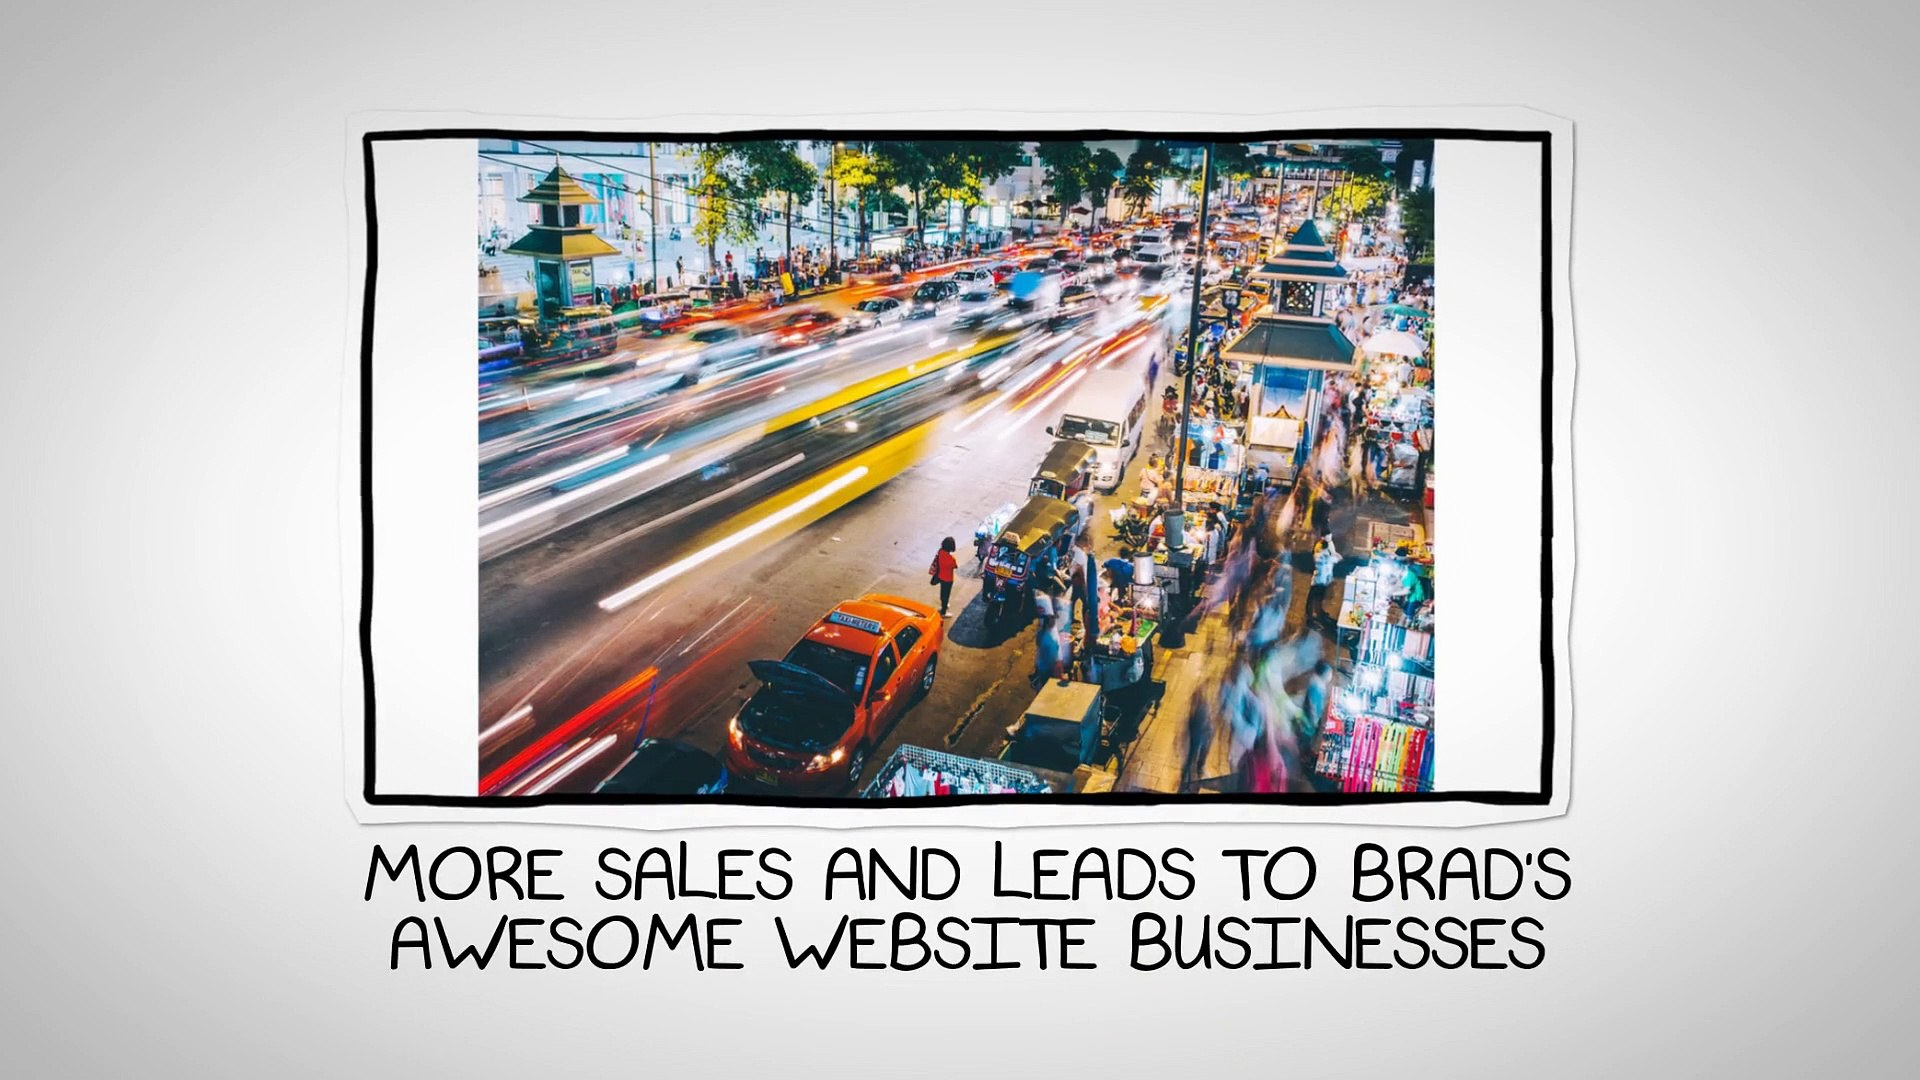 10 Best Ways to Increase Website Traffic - EVERYTHING You Need To Know